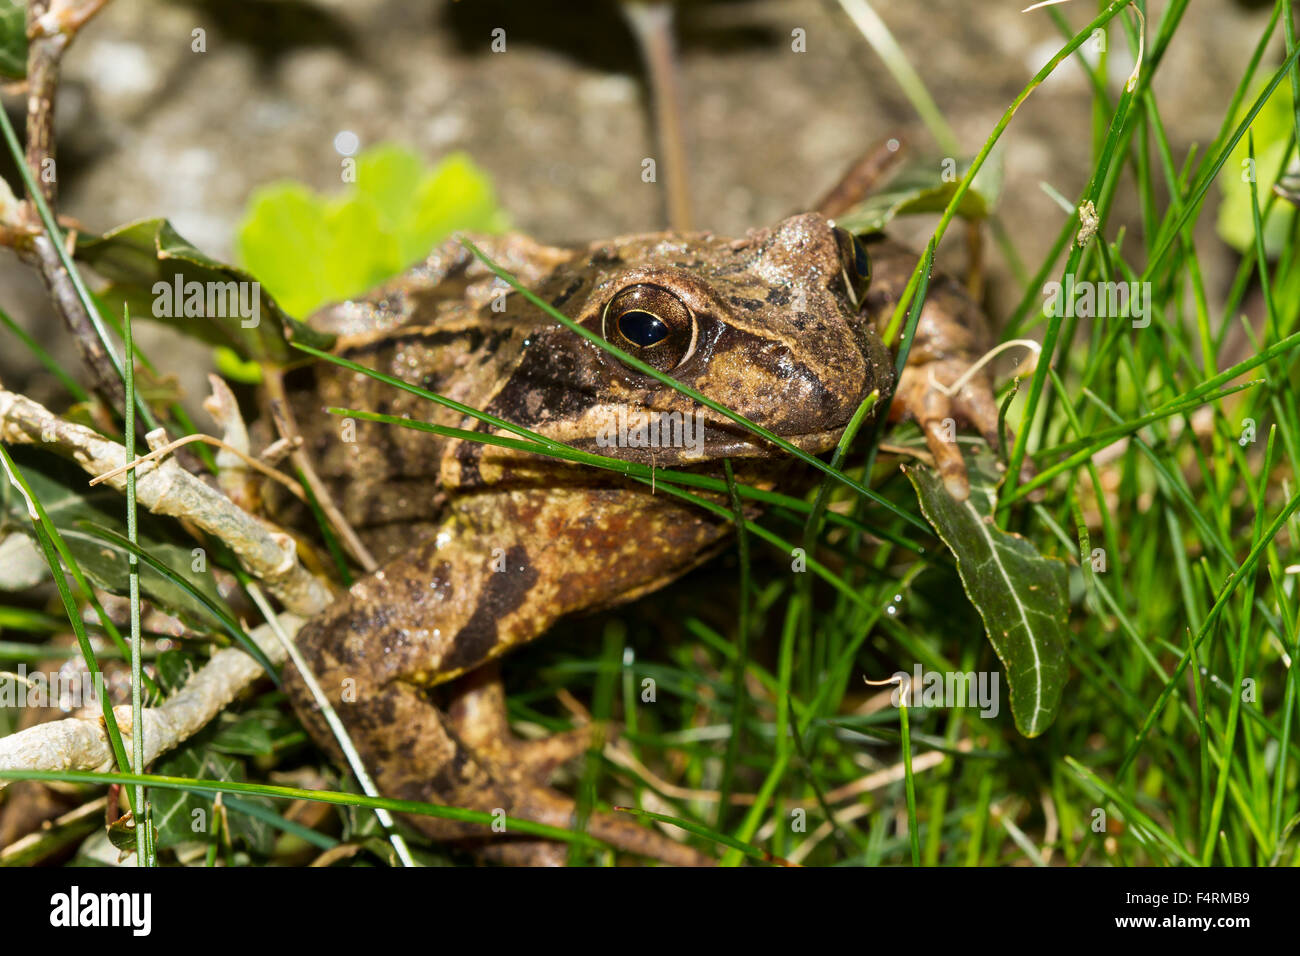 Common frog (Rana temporaria) in between blades of grass, Bavaria, Germany - Stock Image